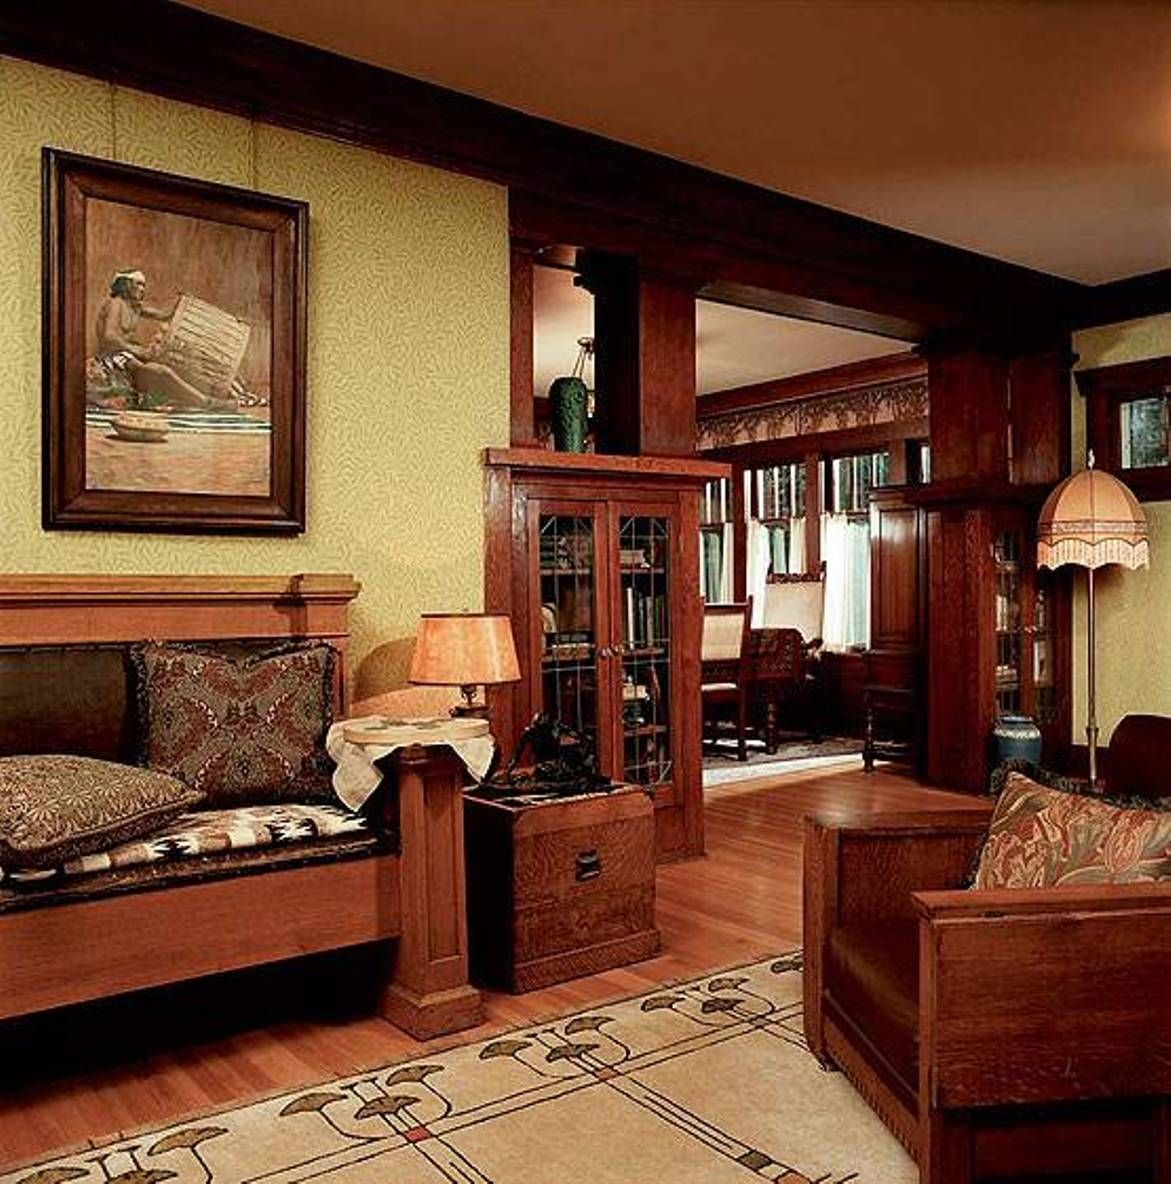 Home Design And Decor Craftsman Interior Decorating